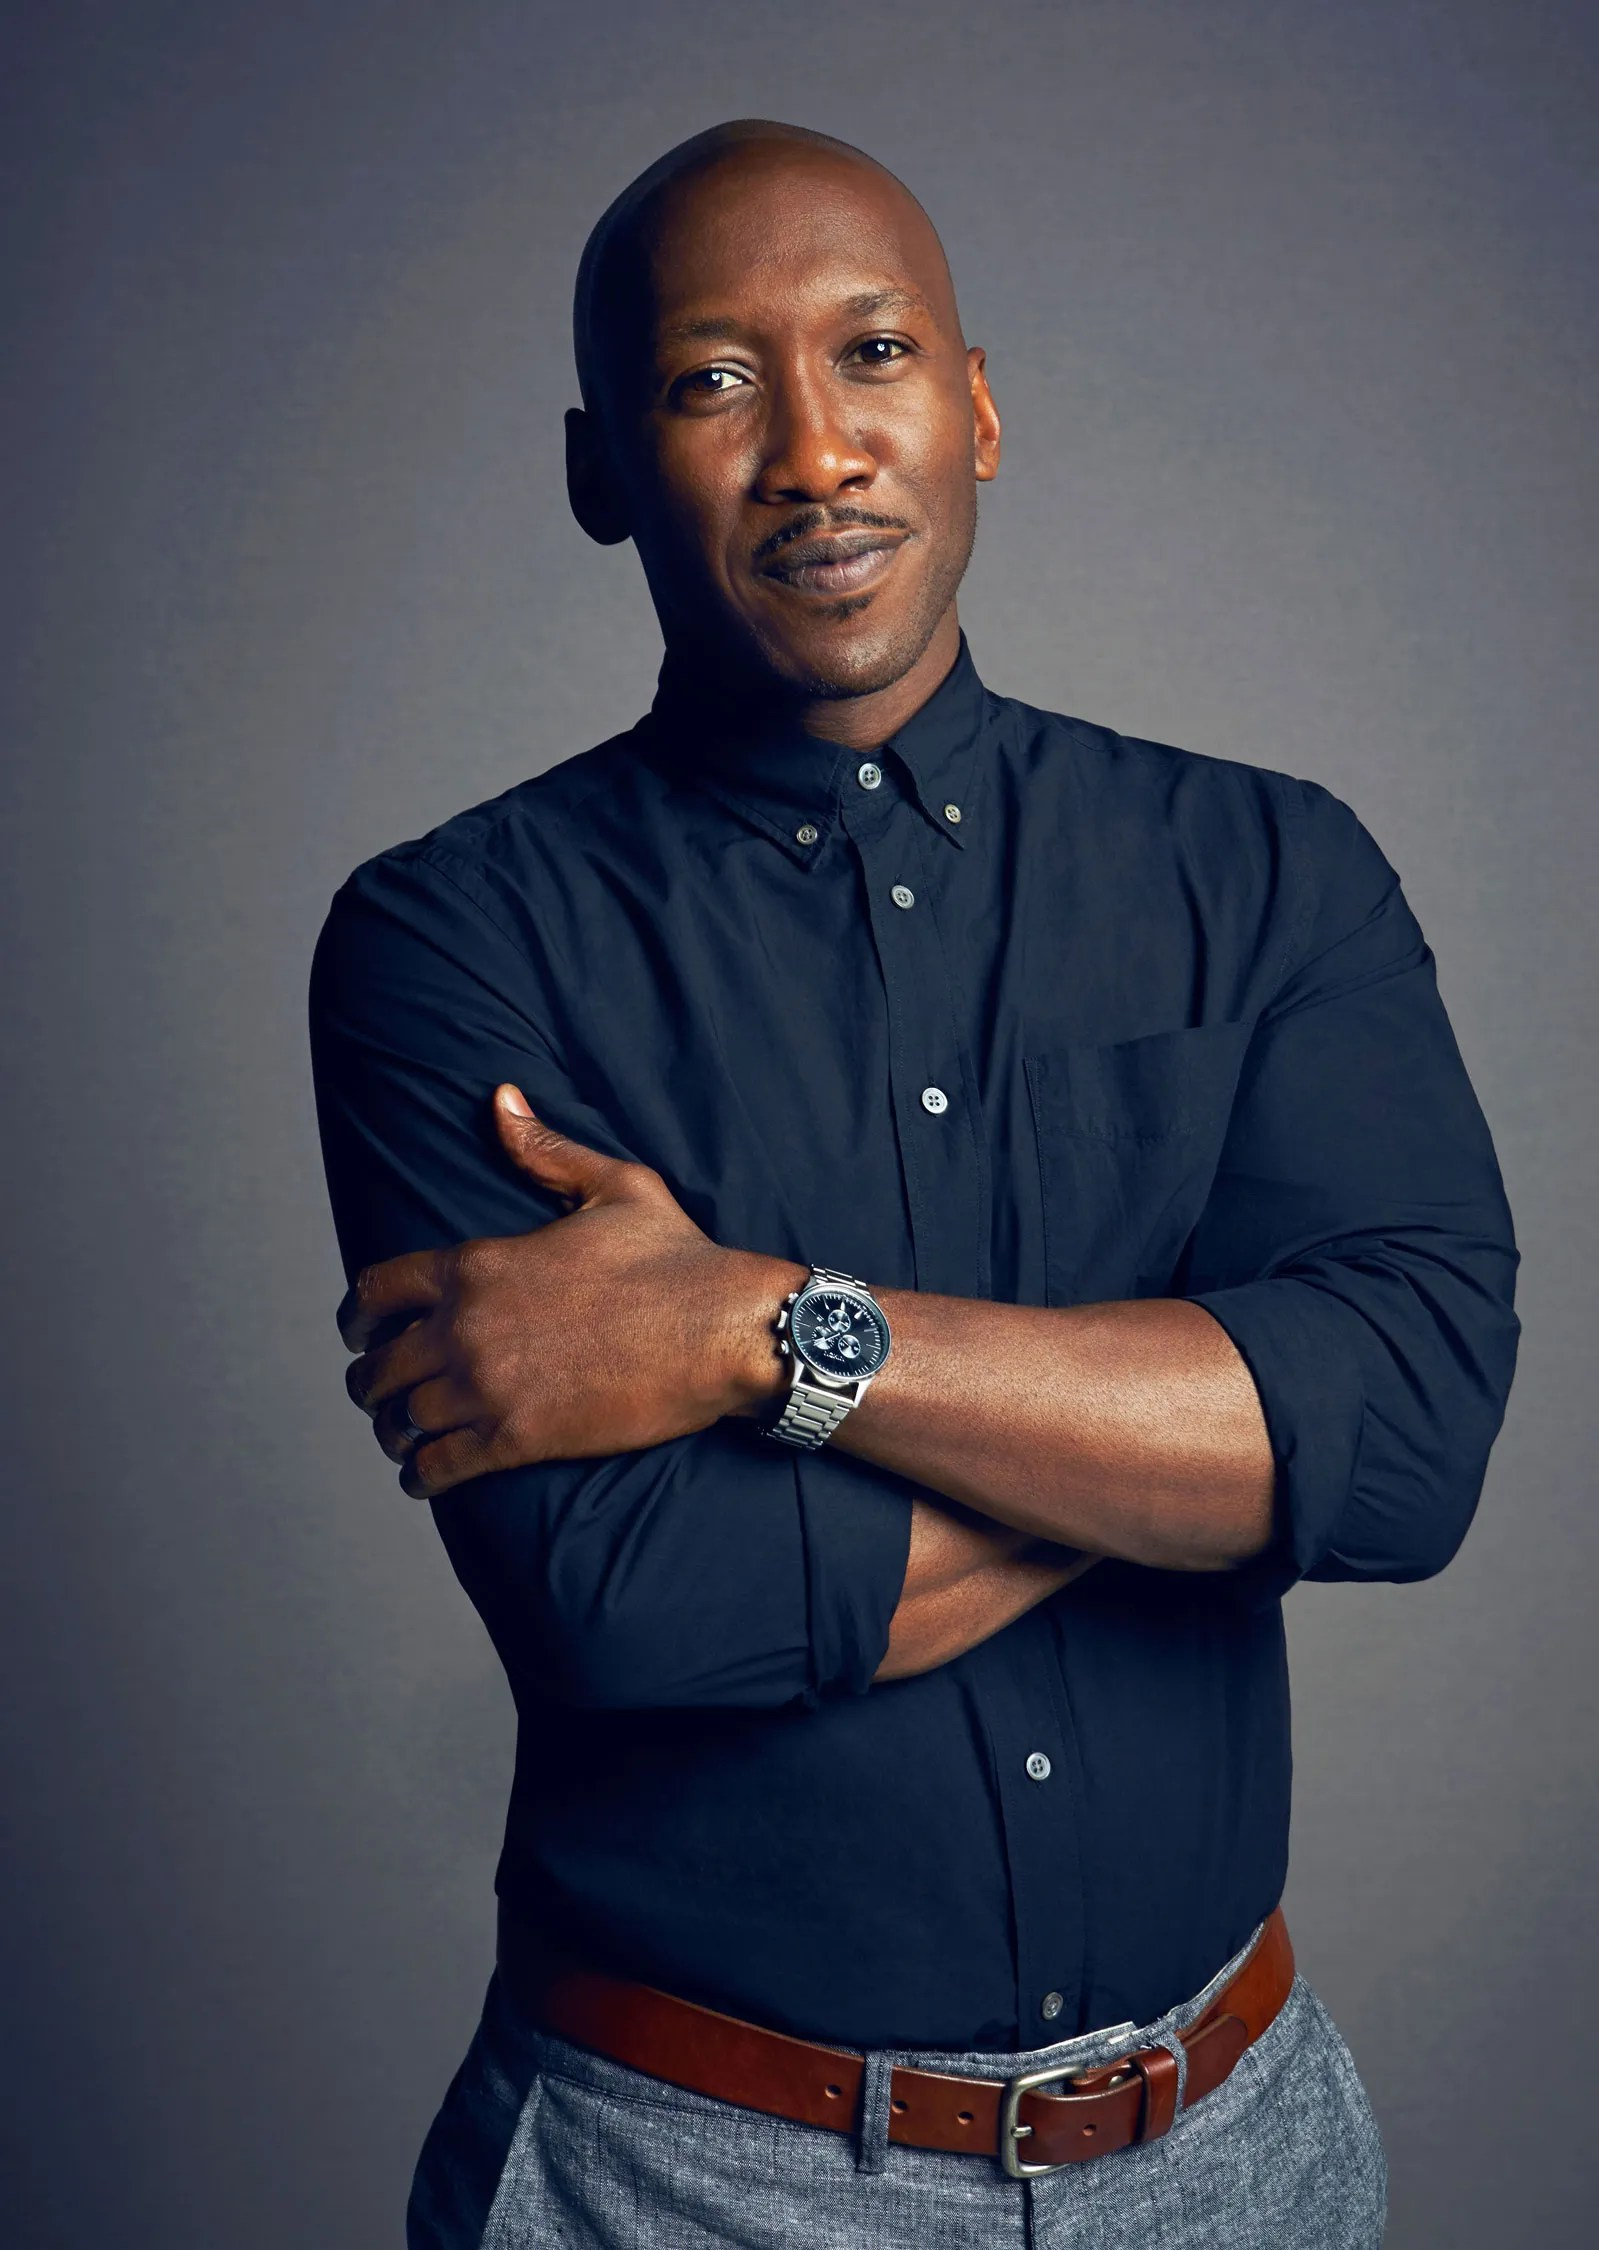 Mahershala Ali on Frank Ocean Luke Cage and Why Clothes Make the Man  Architectural Digest